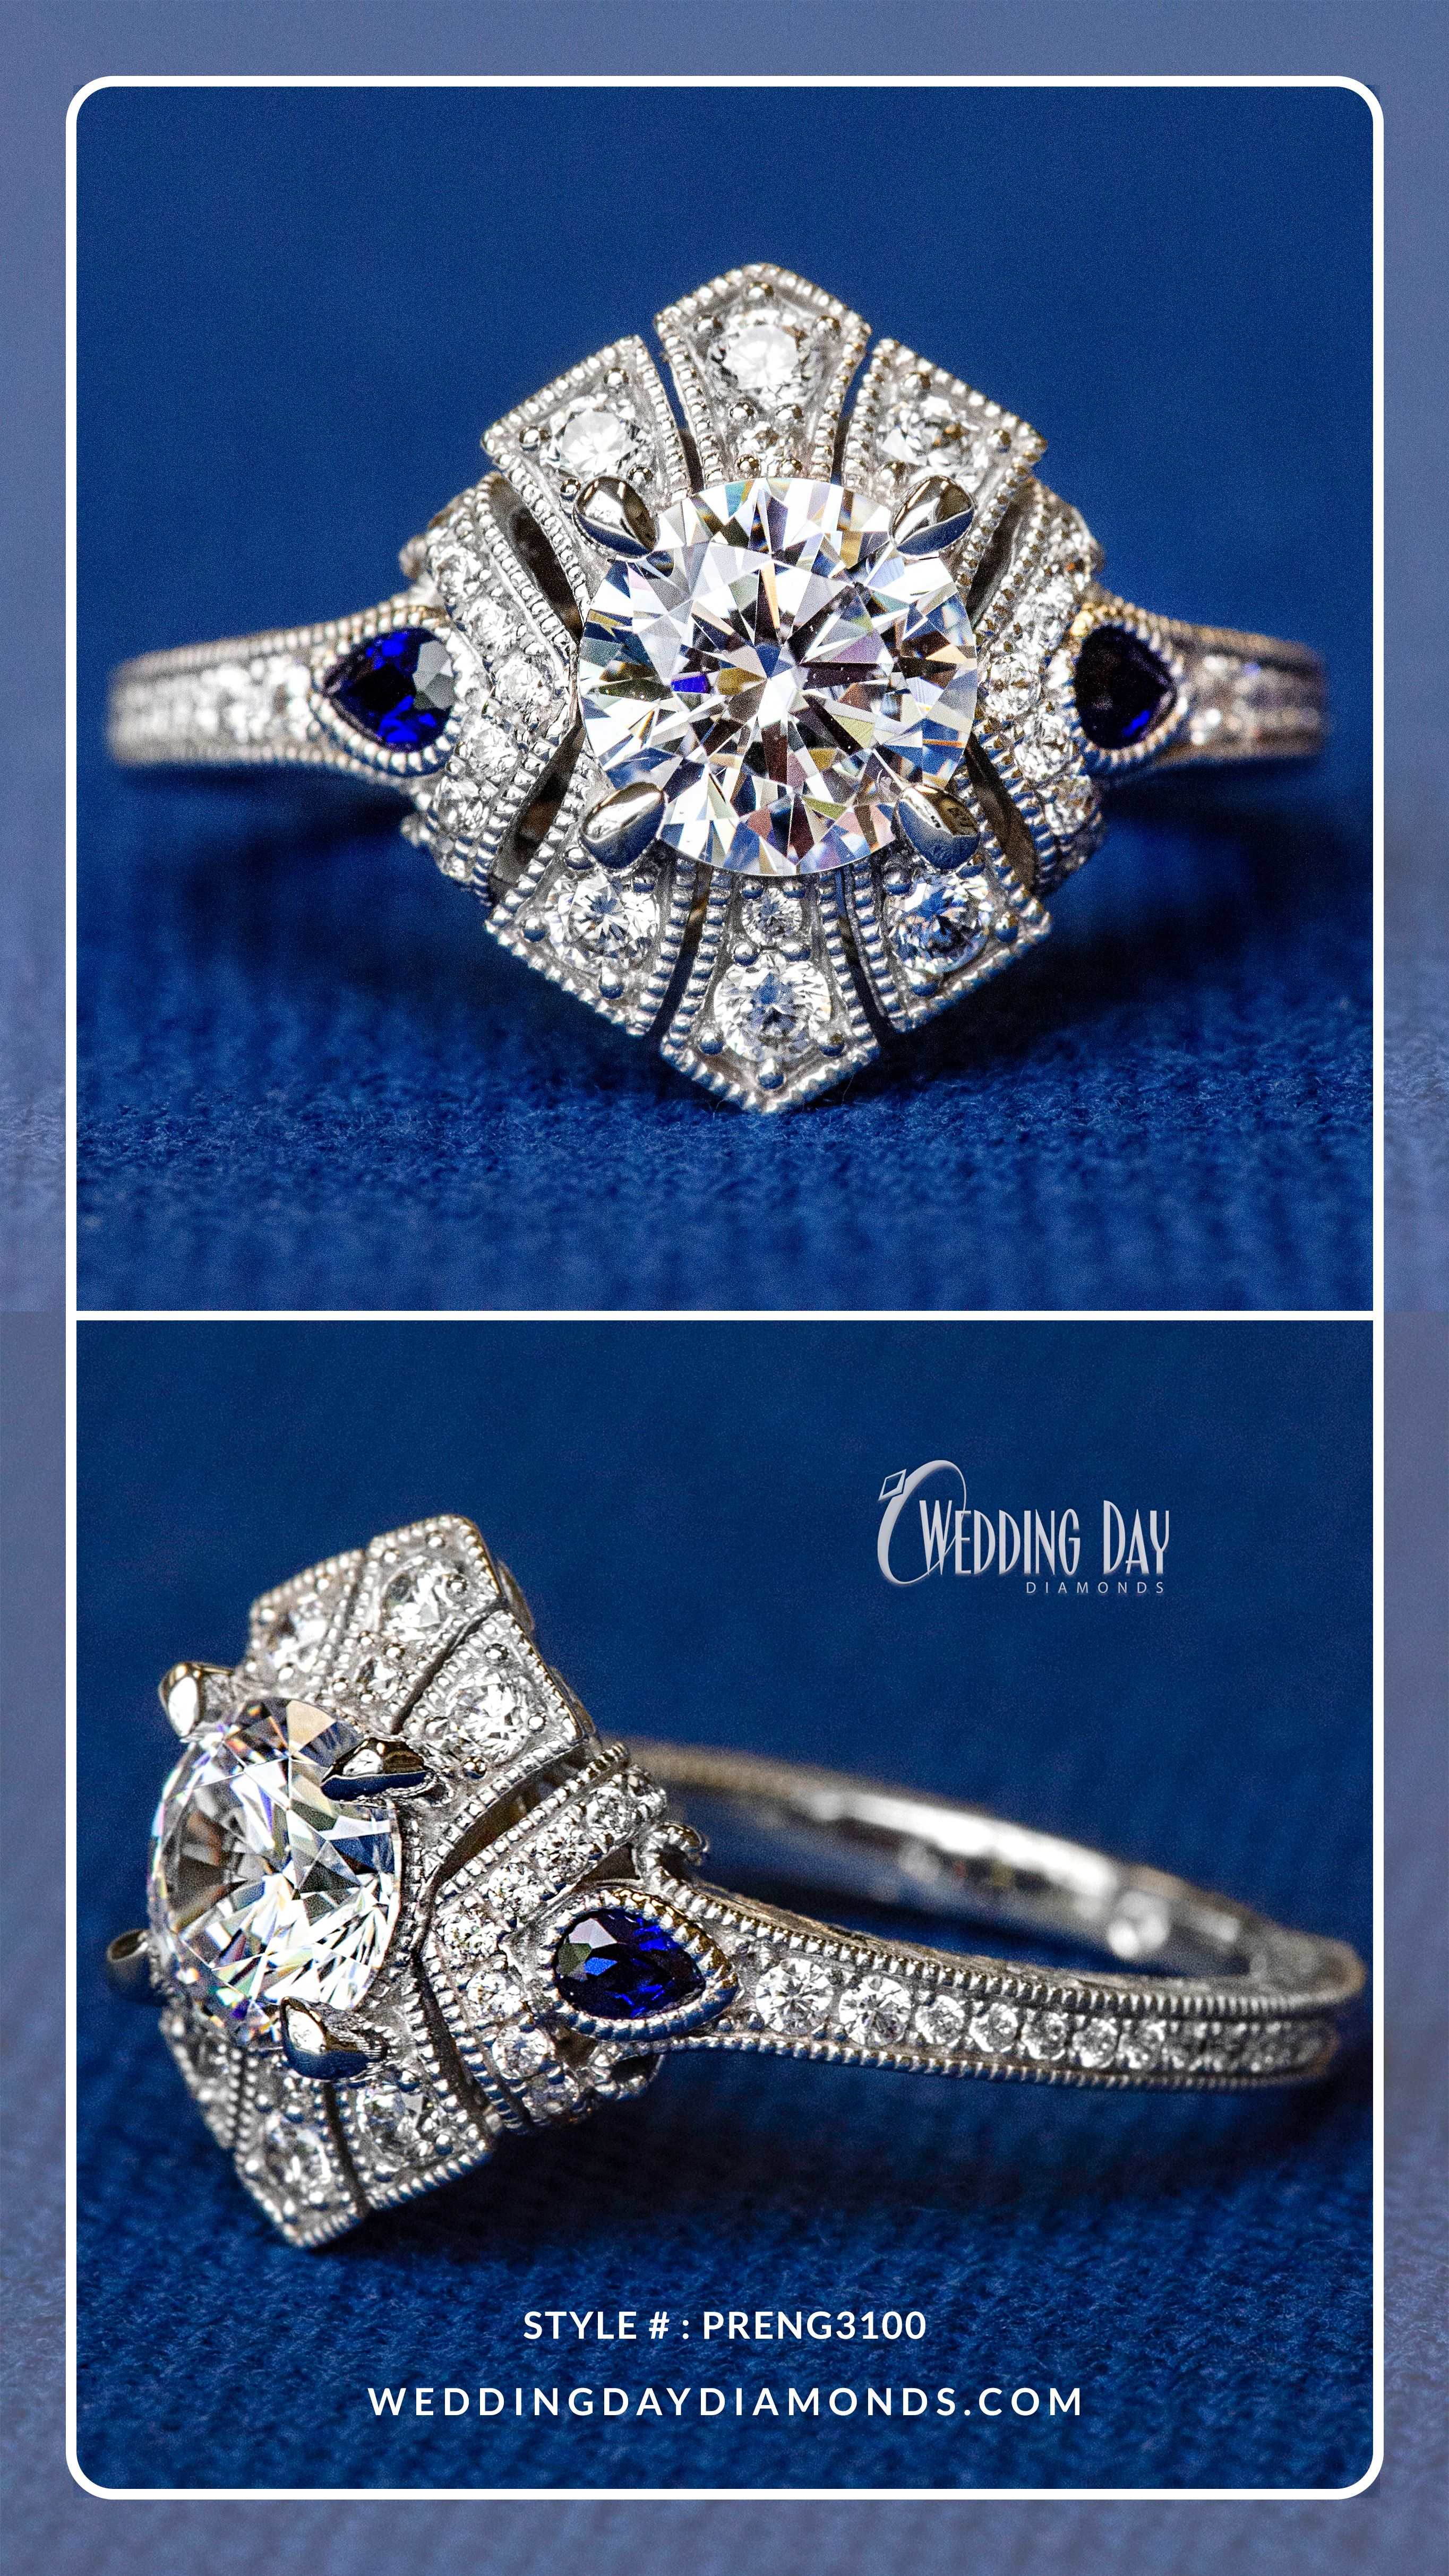 Pin by Alexandra Lilyana on Weddings! in 2020 (With images